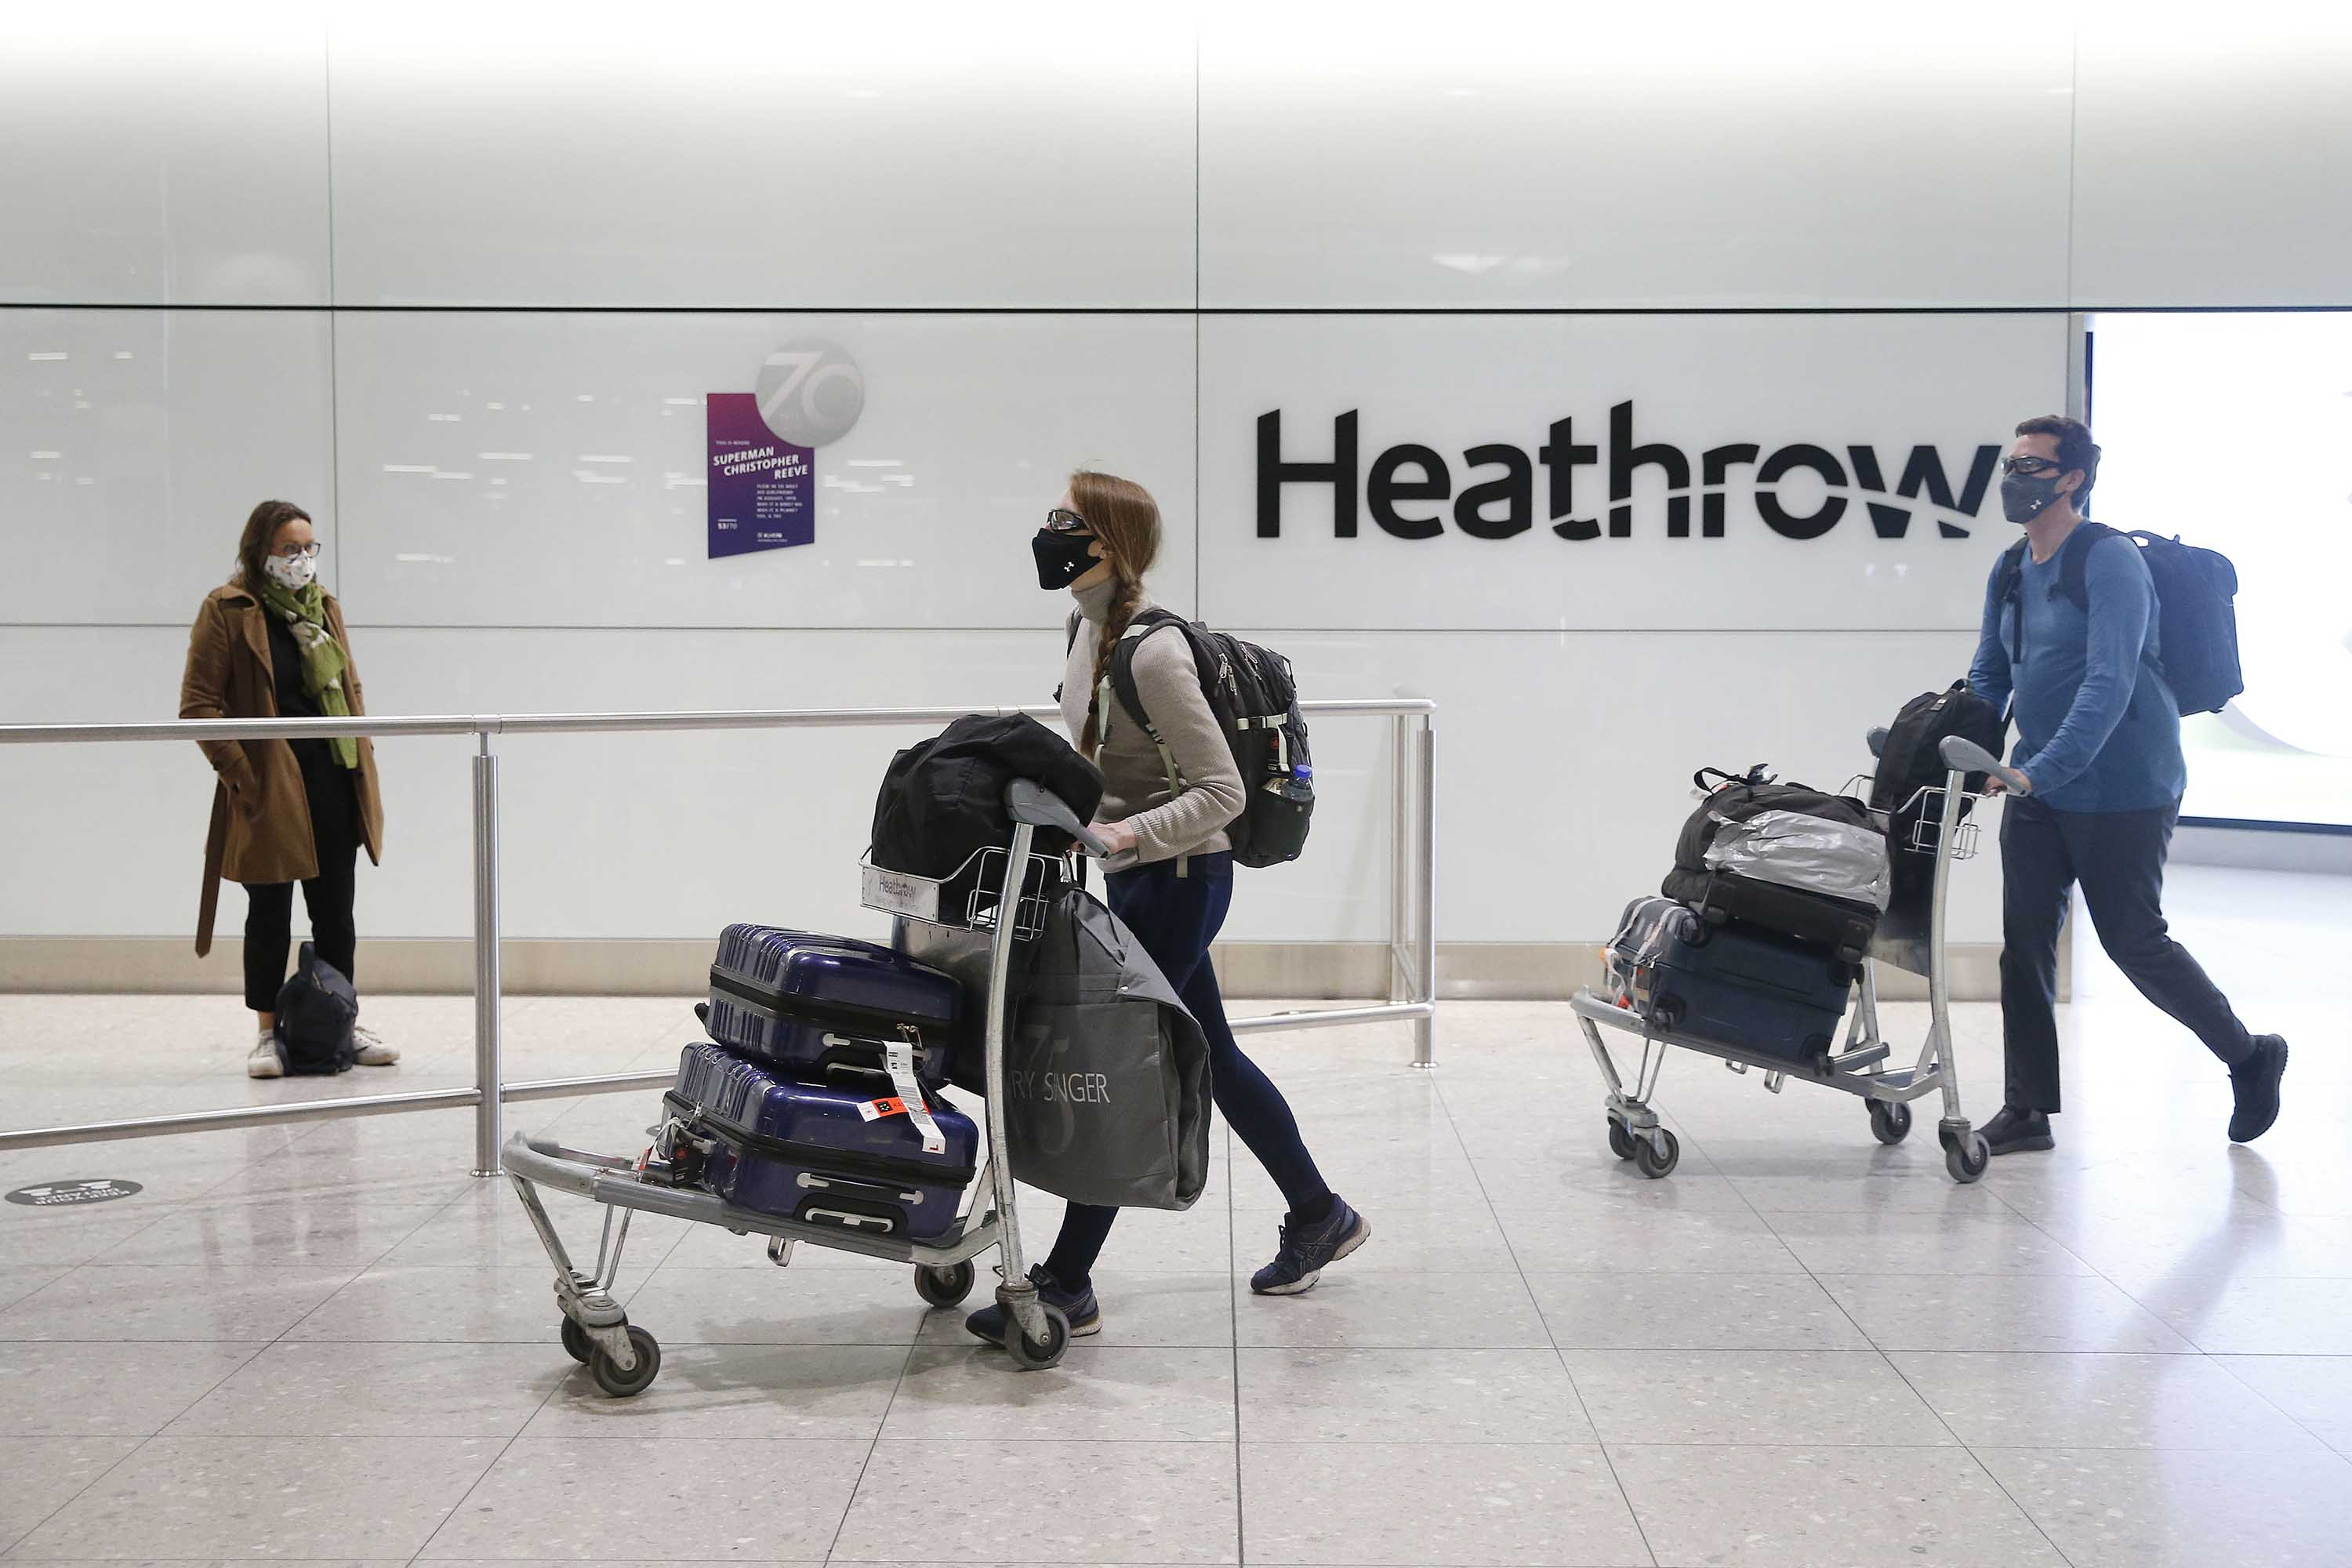 Travelers arrive at Heathrow Airport on January 30, in London, England.